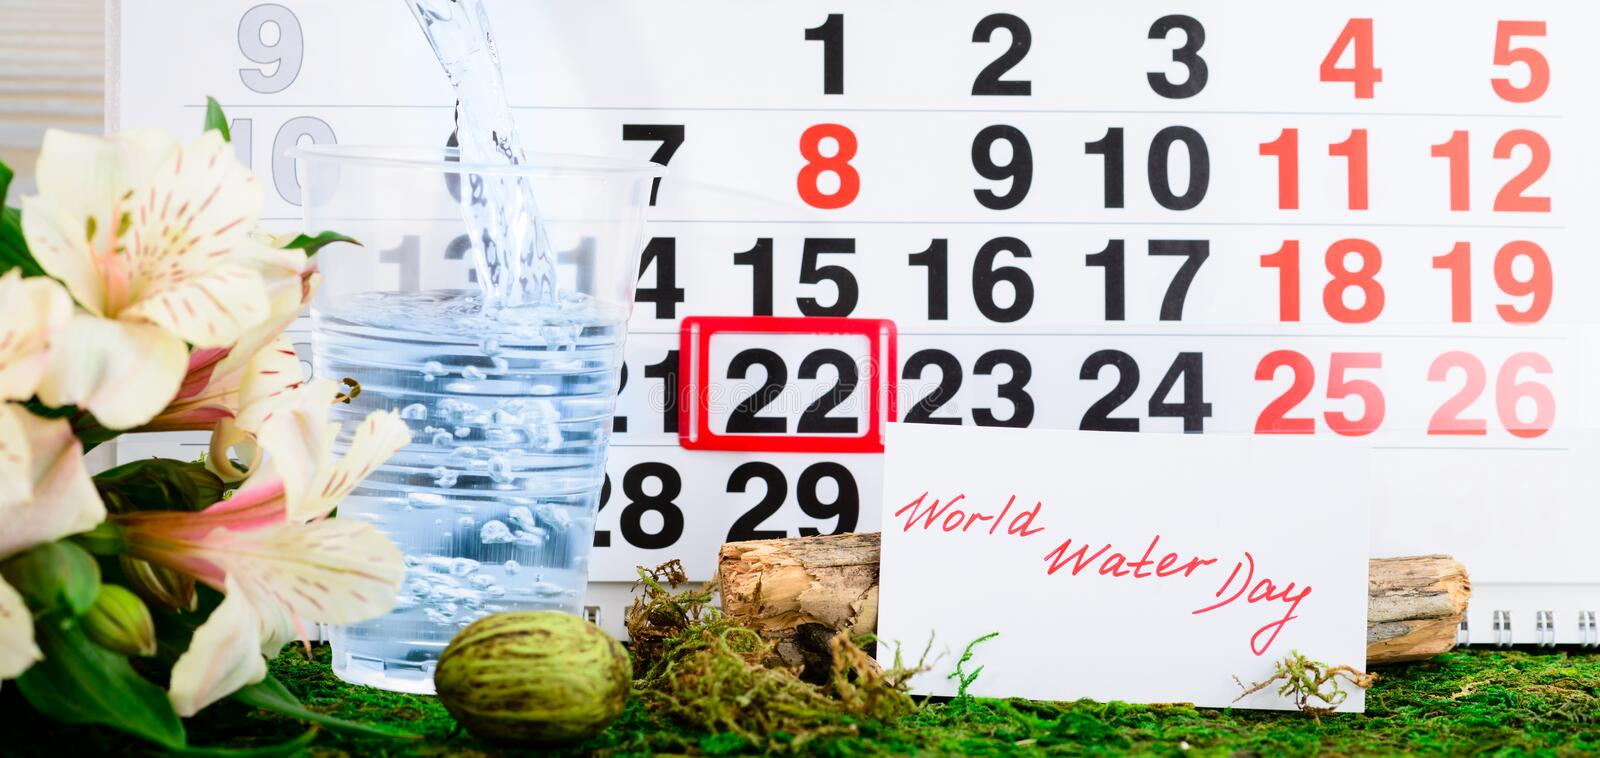 March 22 World Water Day on the calendar stock image